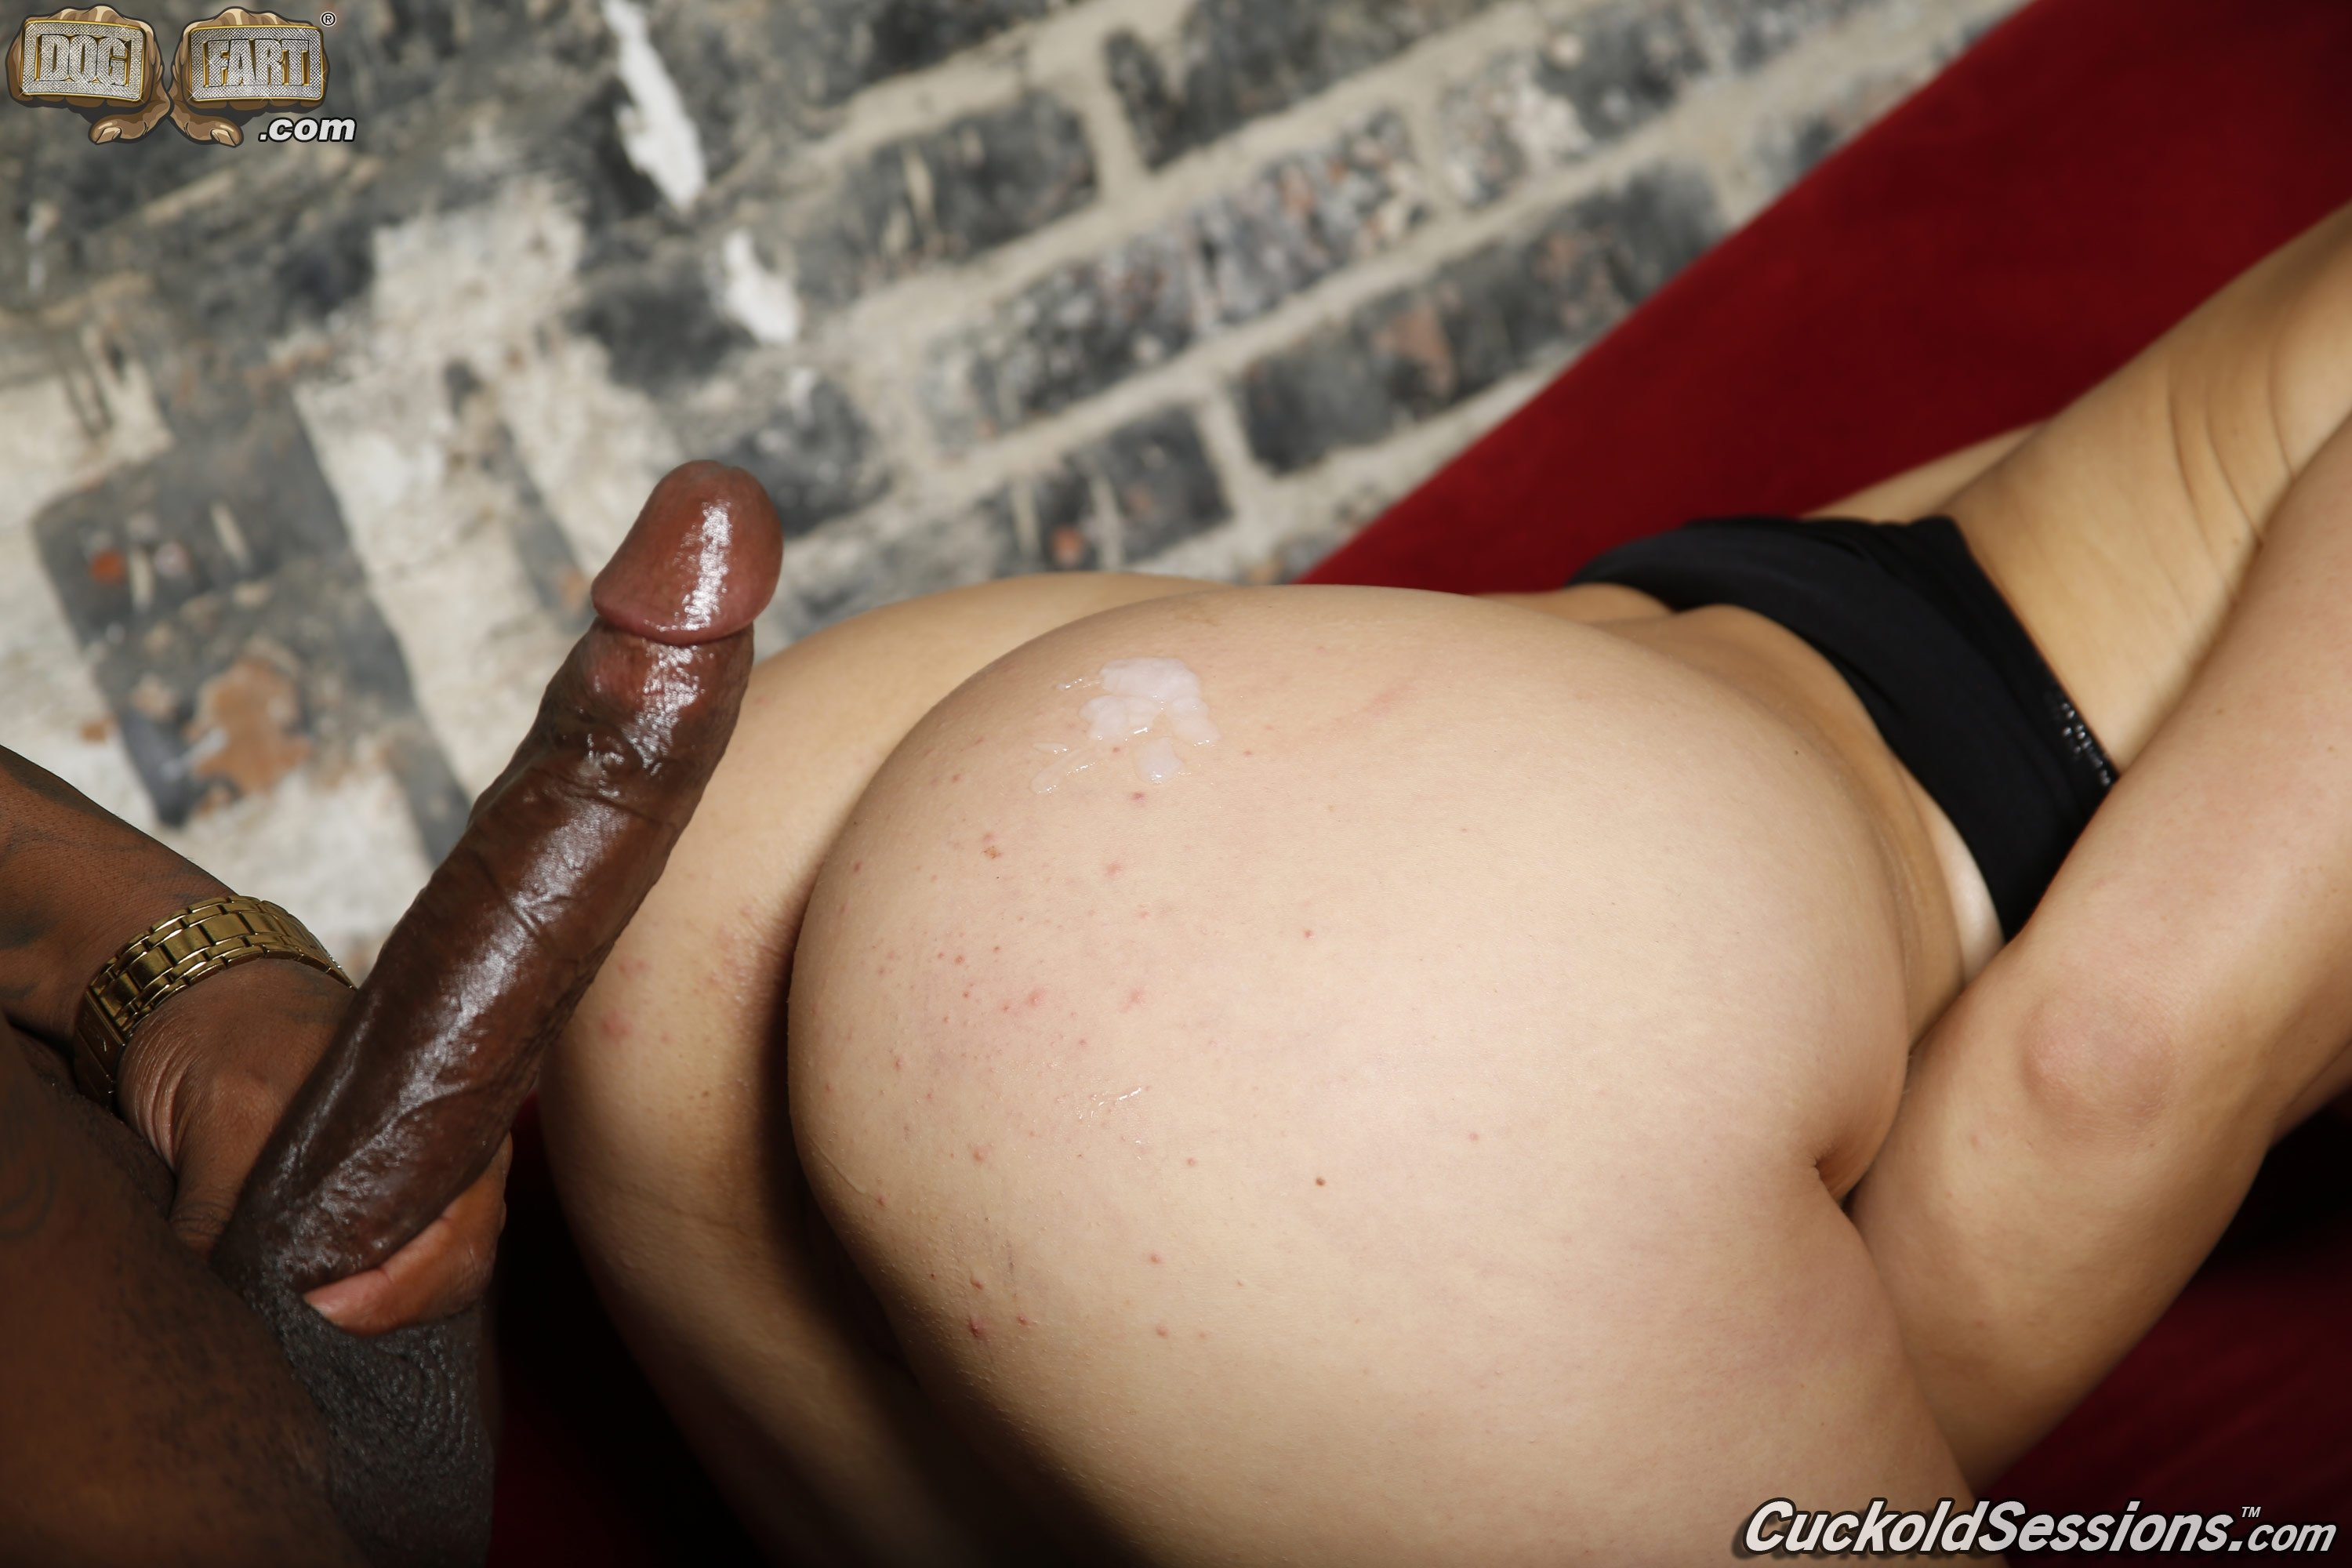 Interracial school porn #1